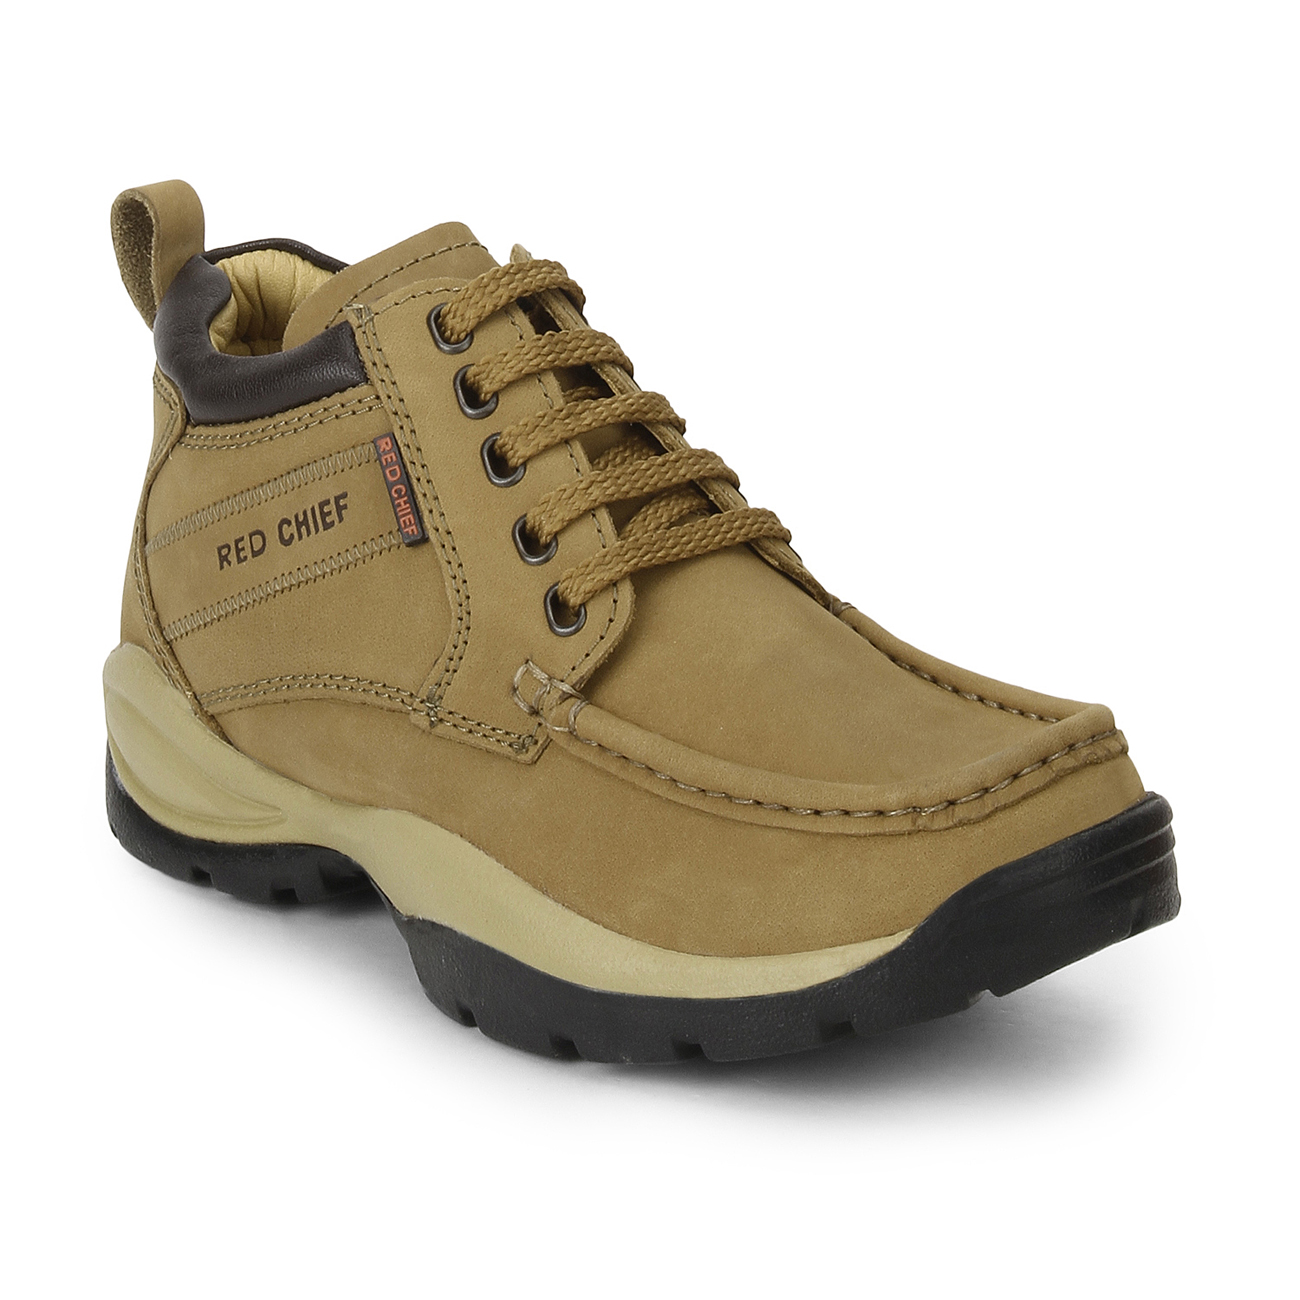 RED CHIEF   RC2051 022 - MENS CASUAL Rust Boots